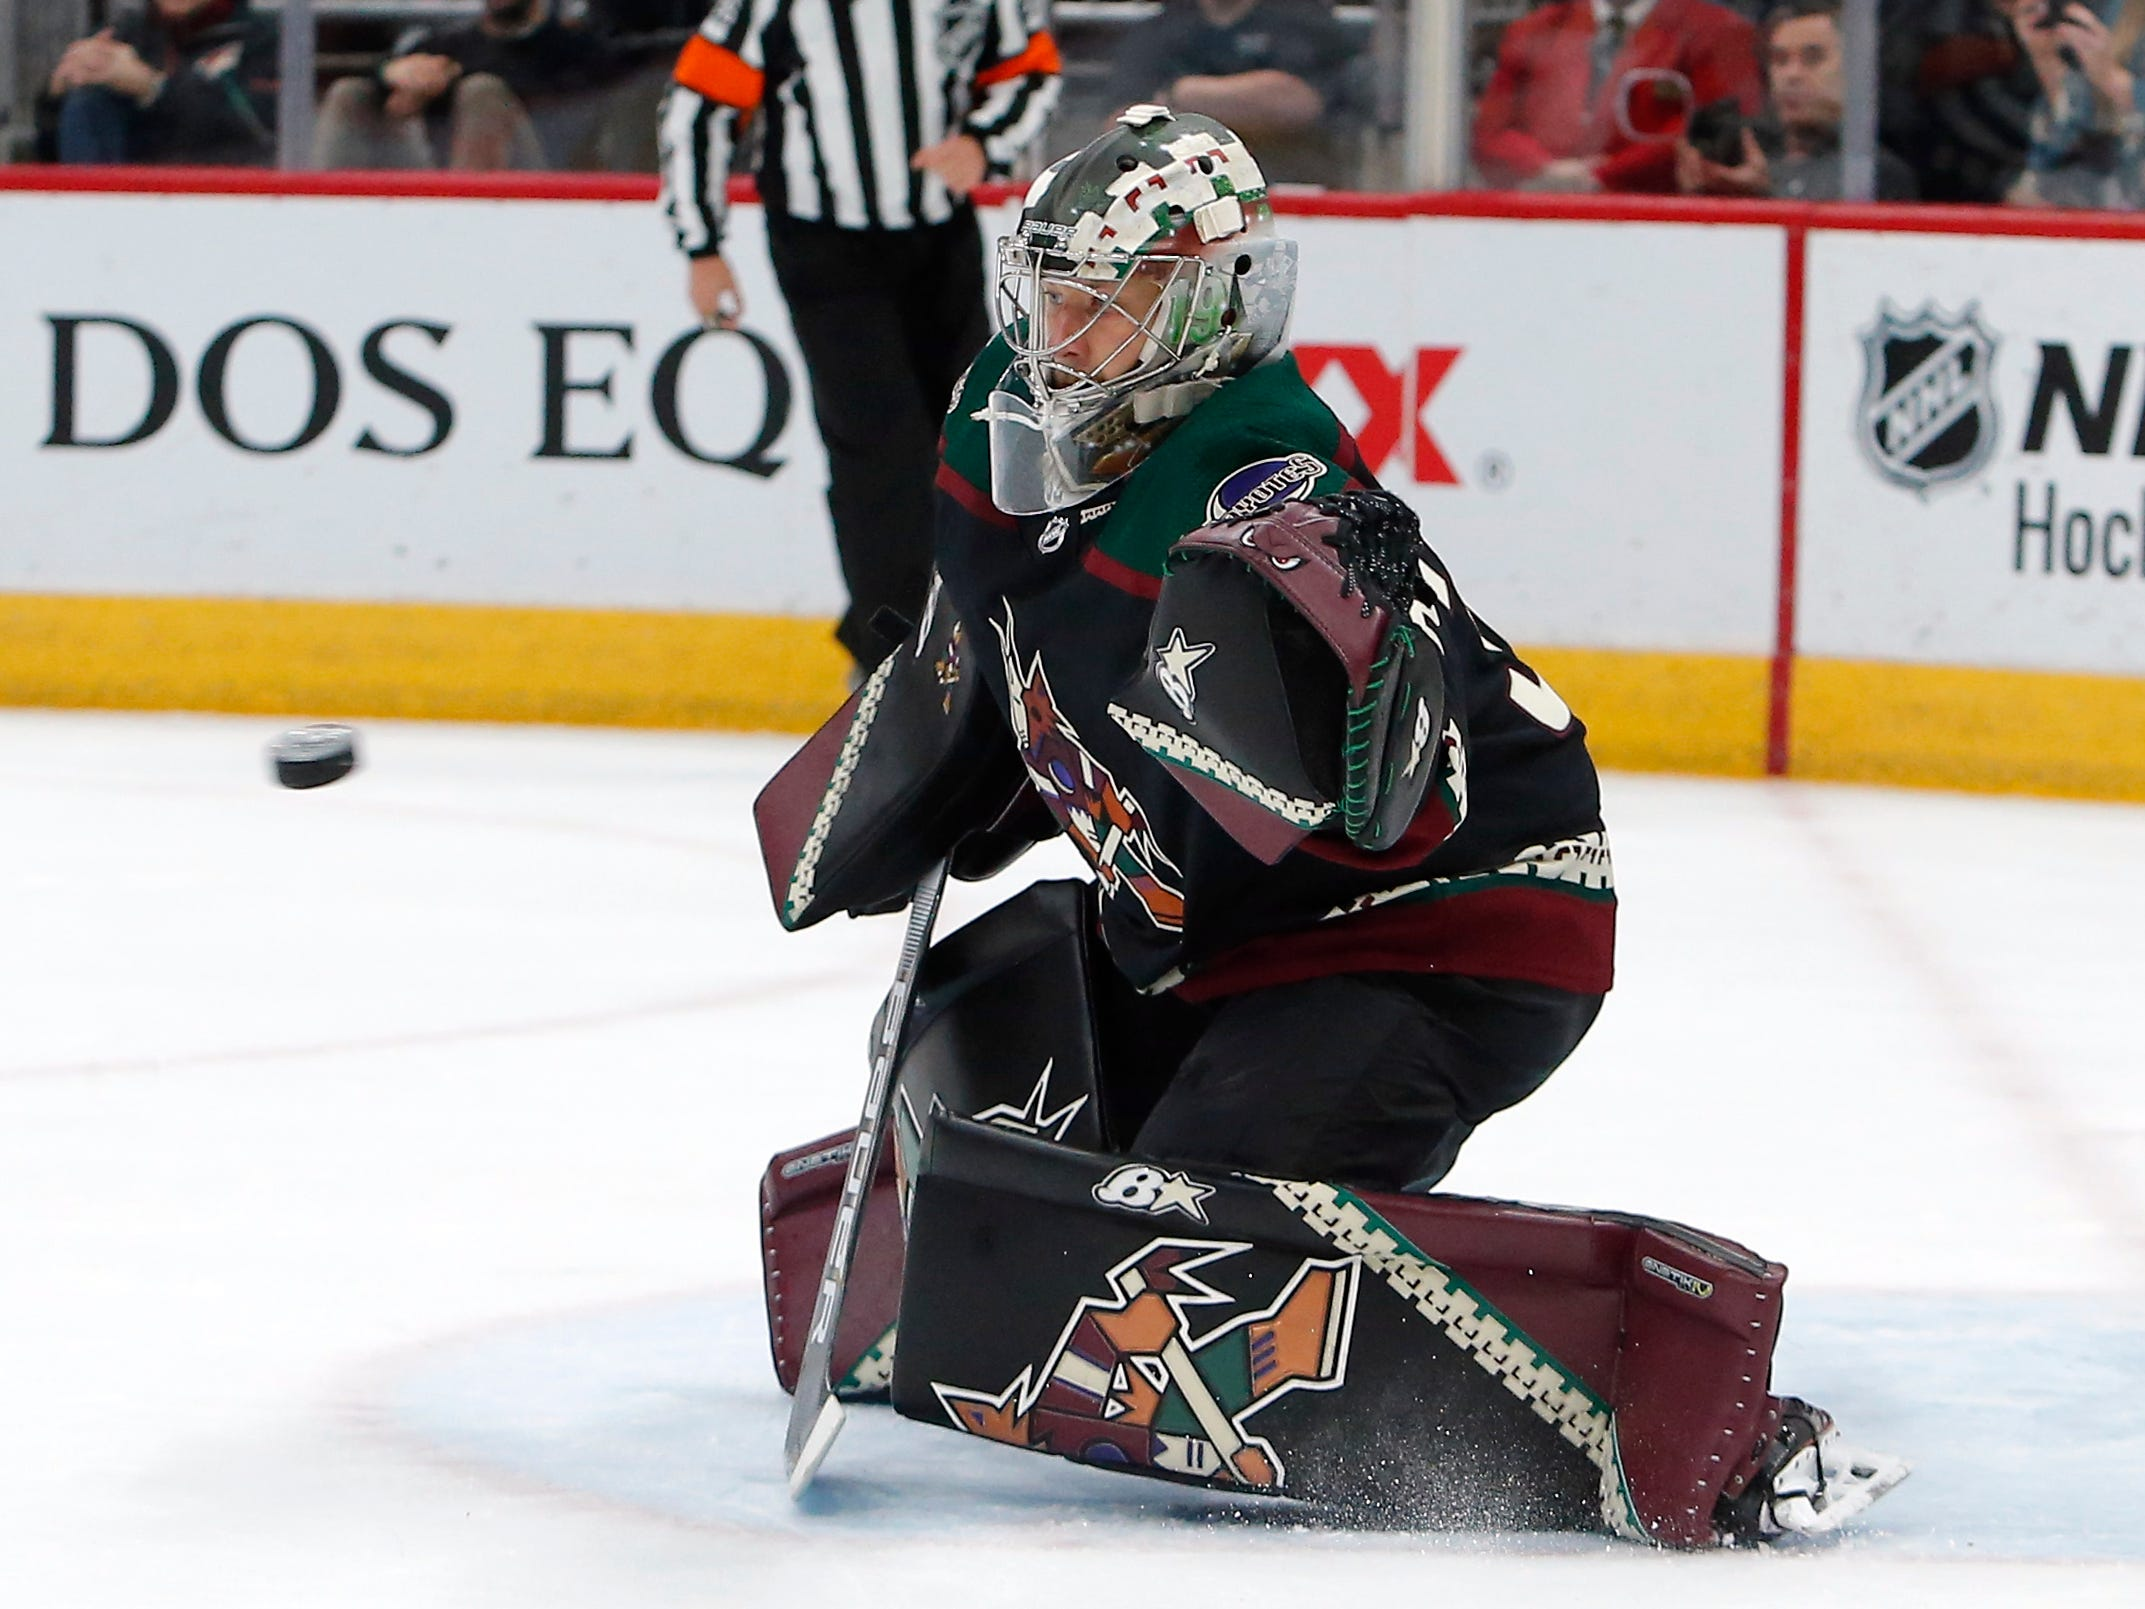 Arizona Coyotes goaltender Antti Raanta (32) in the first period during an NHL hockey game against the Buffalo Sabres, Saturday, Oct. 13, 2018, in Glendale, Ariz.